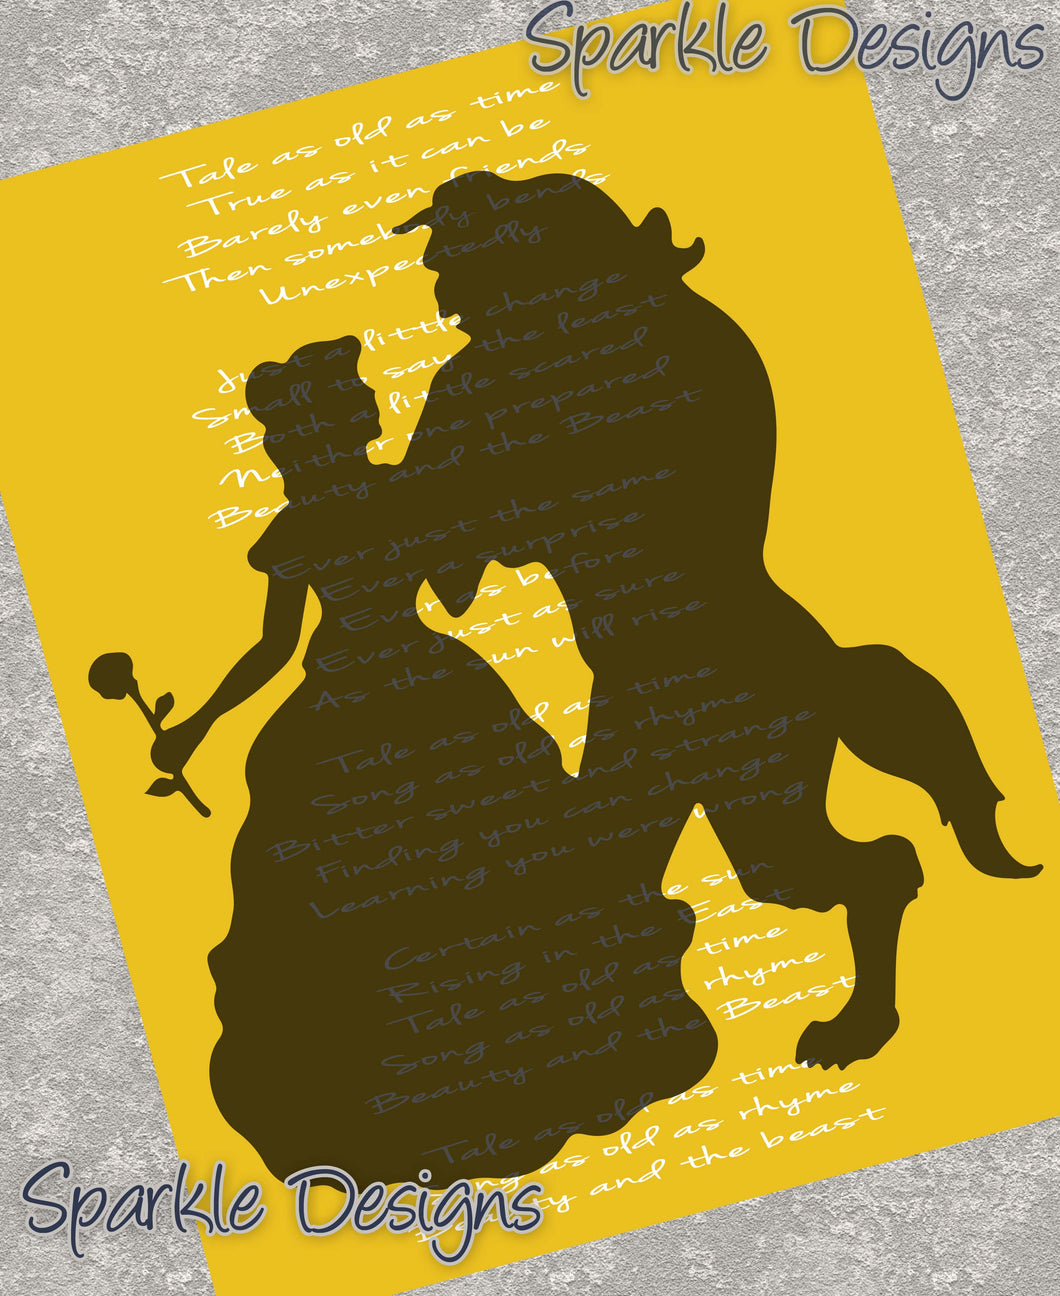 Tale as old as time lyrics - Belle / Beauty & the Beast 20 Magnet